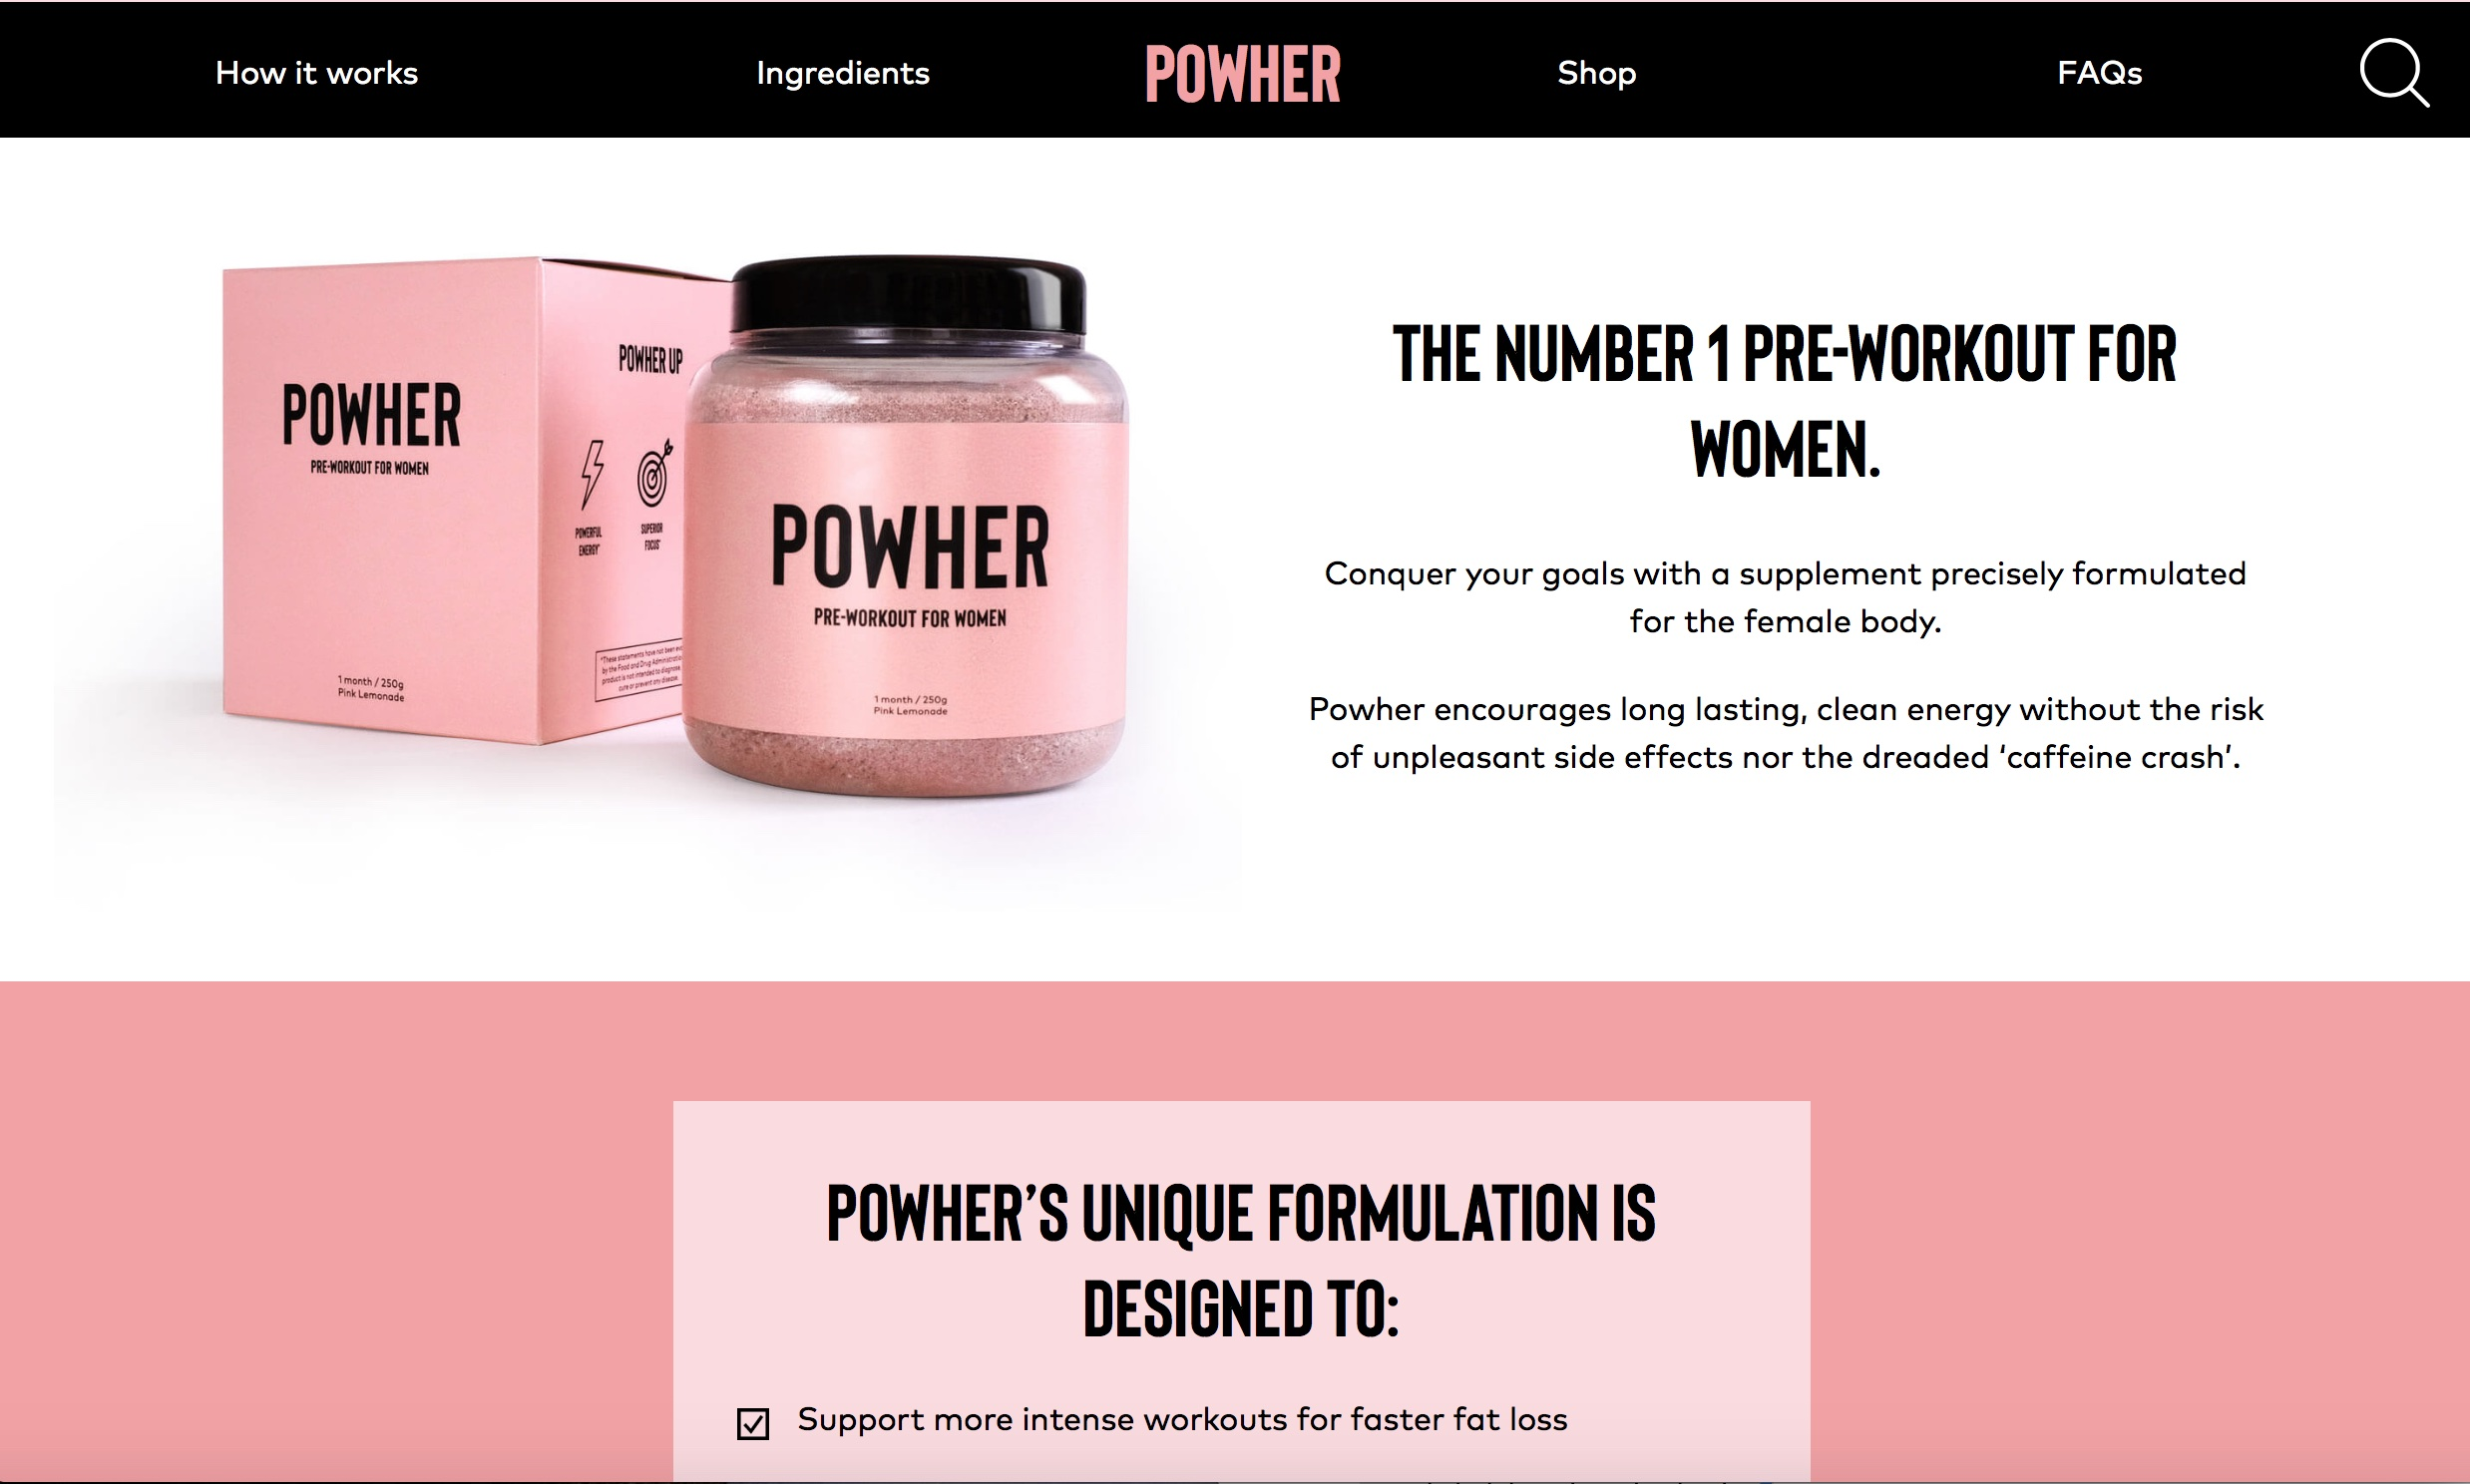 powher website